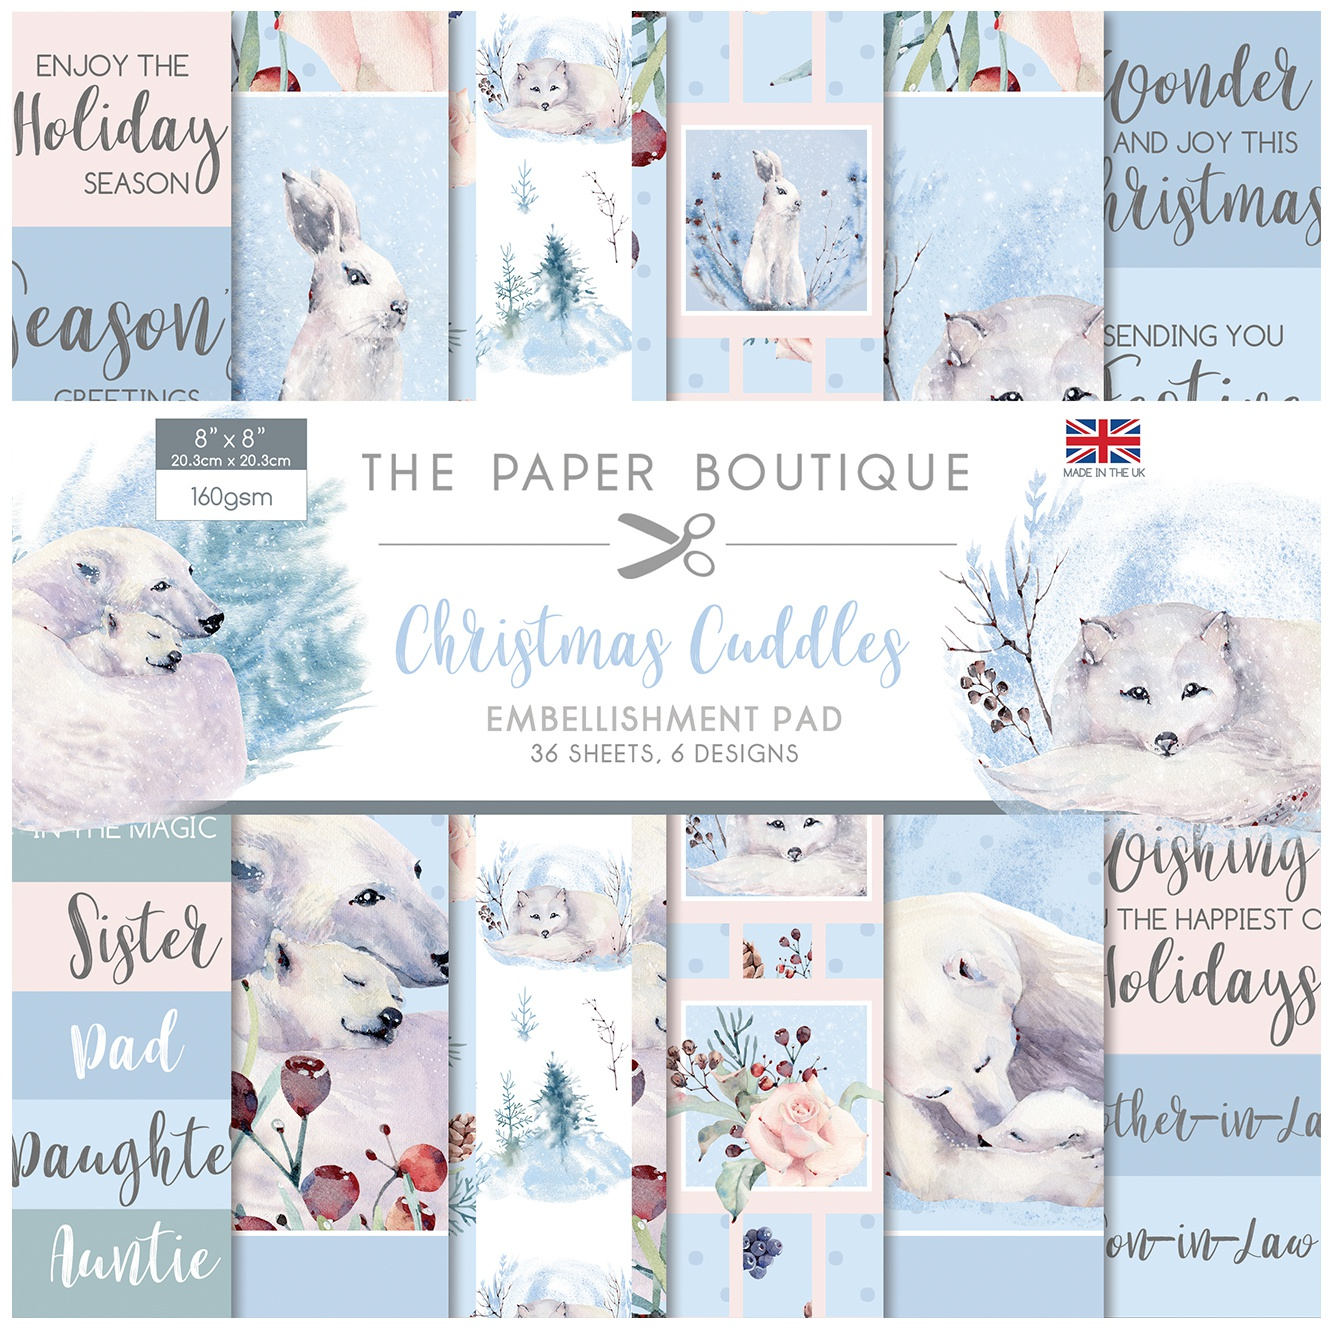 THE PAPER BOUTIQUE 8X8 PAD: EMBELLISHMENT- CHRISTMAS CUDDLES